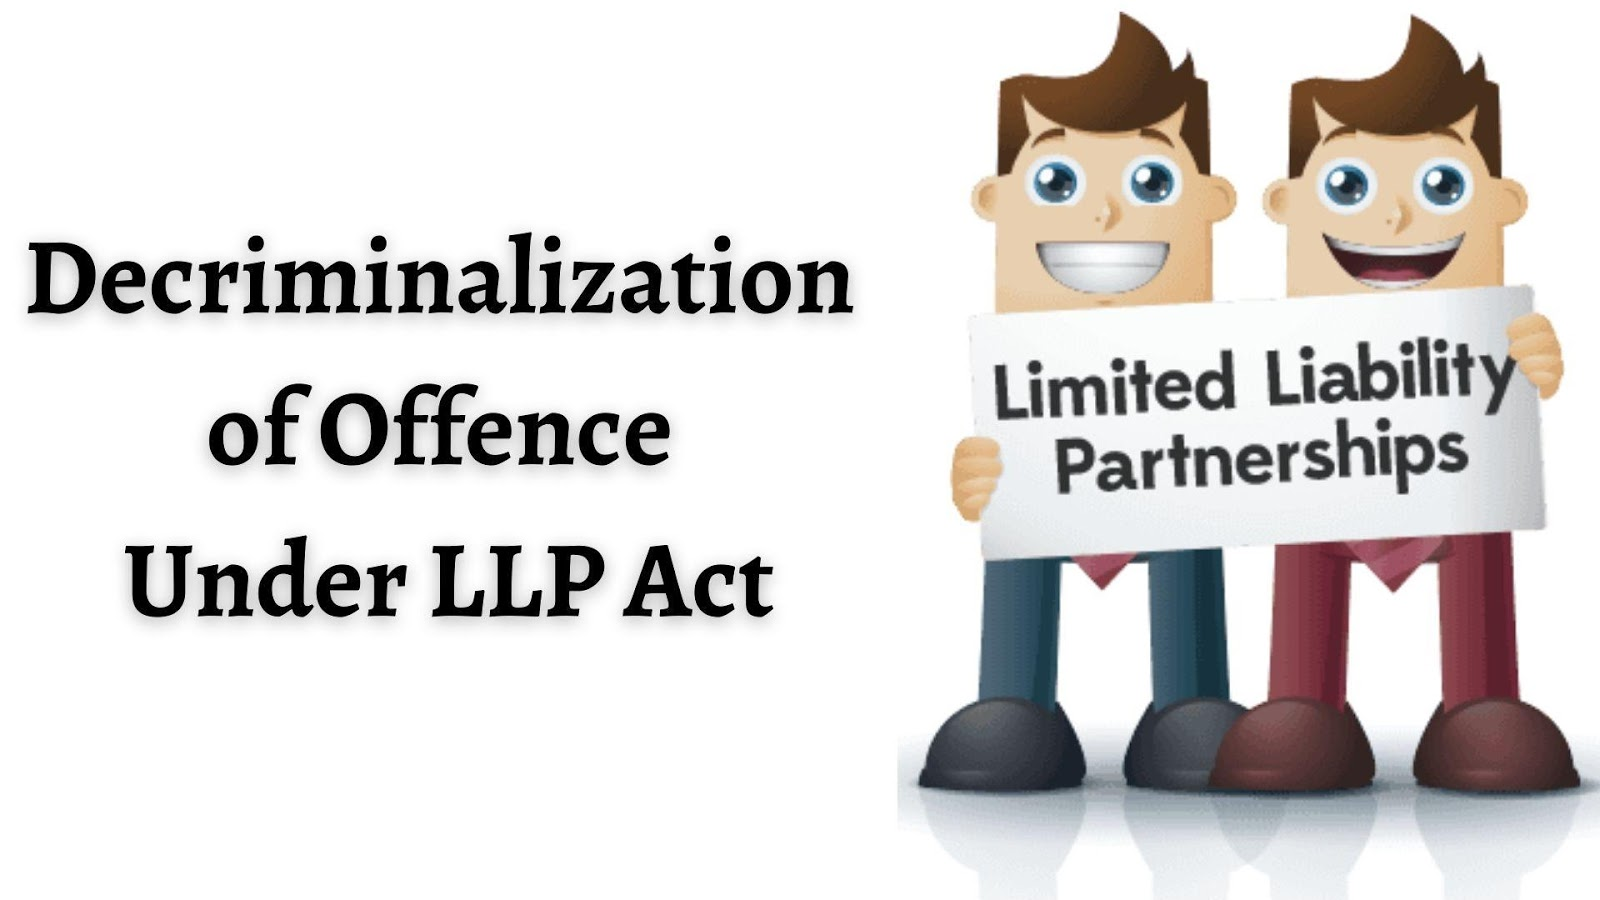 Decriminalization of offence under LLP Act